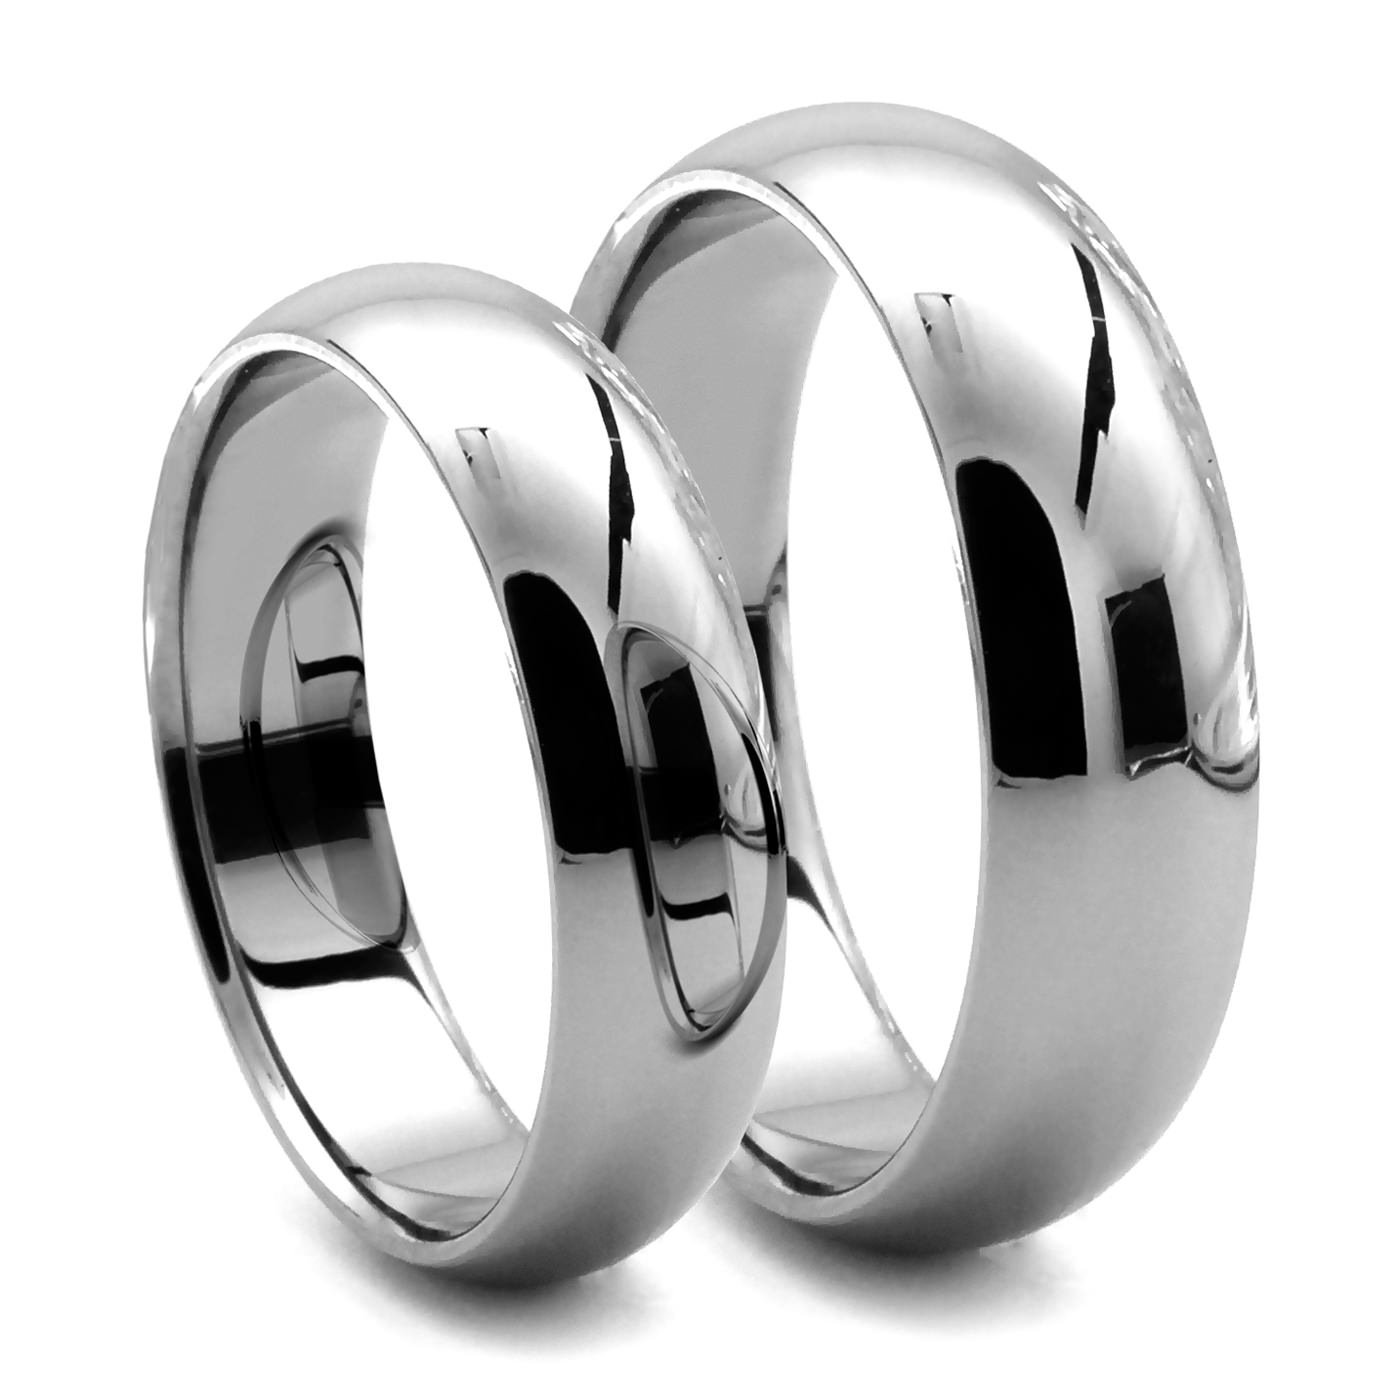 rings iihj wedding listing il bands matching zoom size tungsten set fullxfull